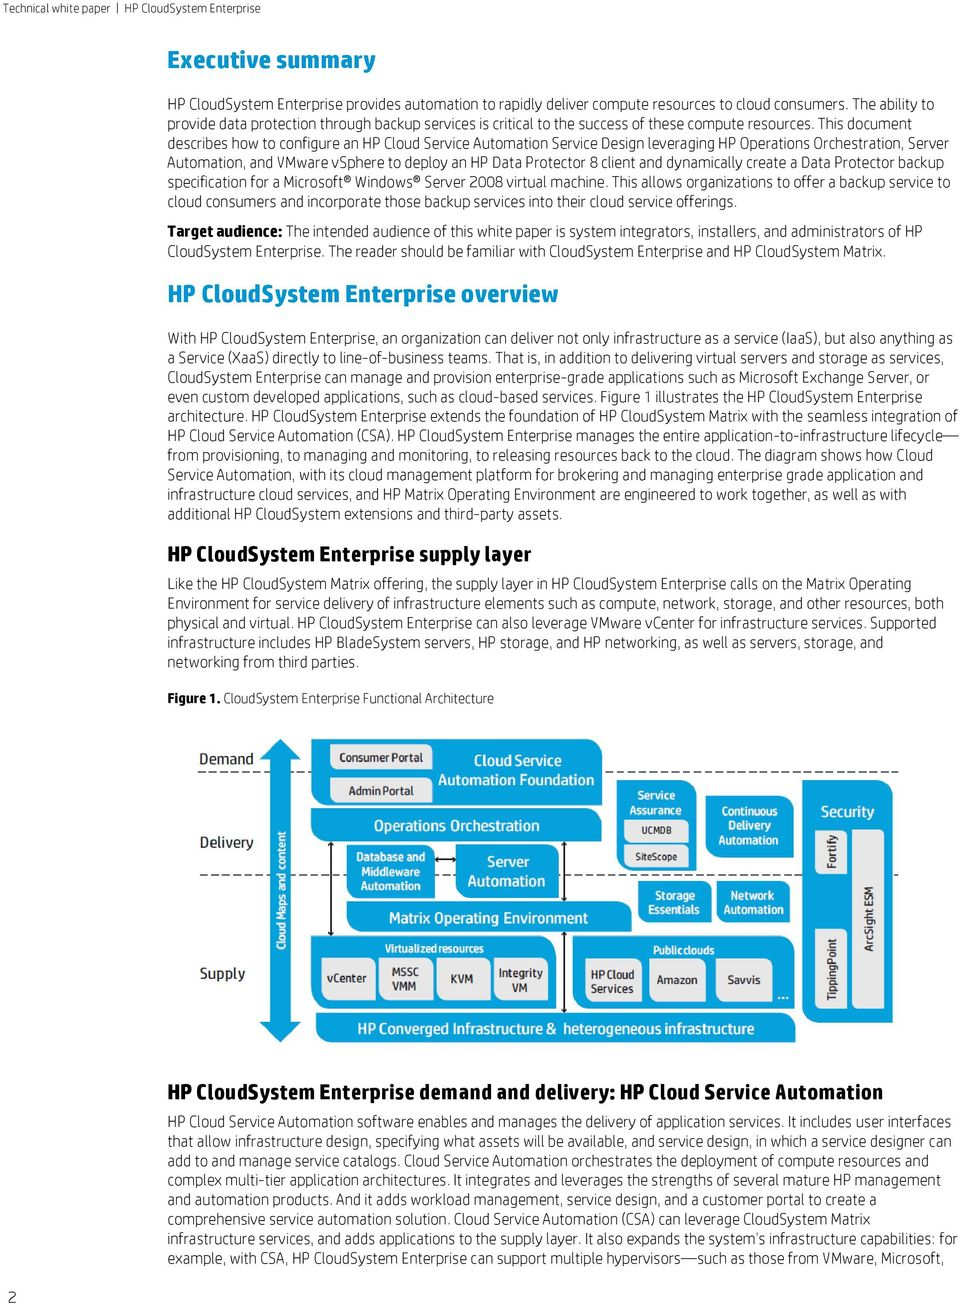 This document describes how to configure an HP Cloud Service Automation Service Design leveraging HP Operations Orchestration, Server Automation, and VMware vsphere to deploy an HP Data Protector 8